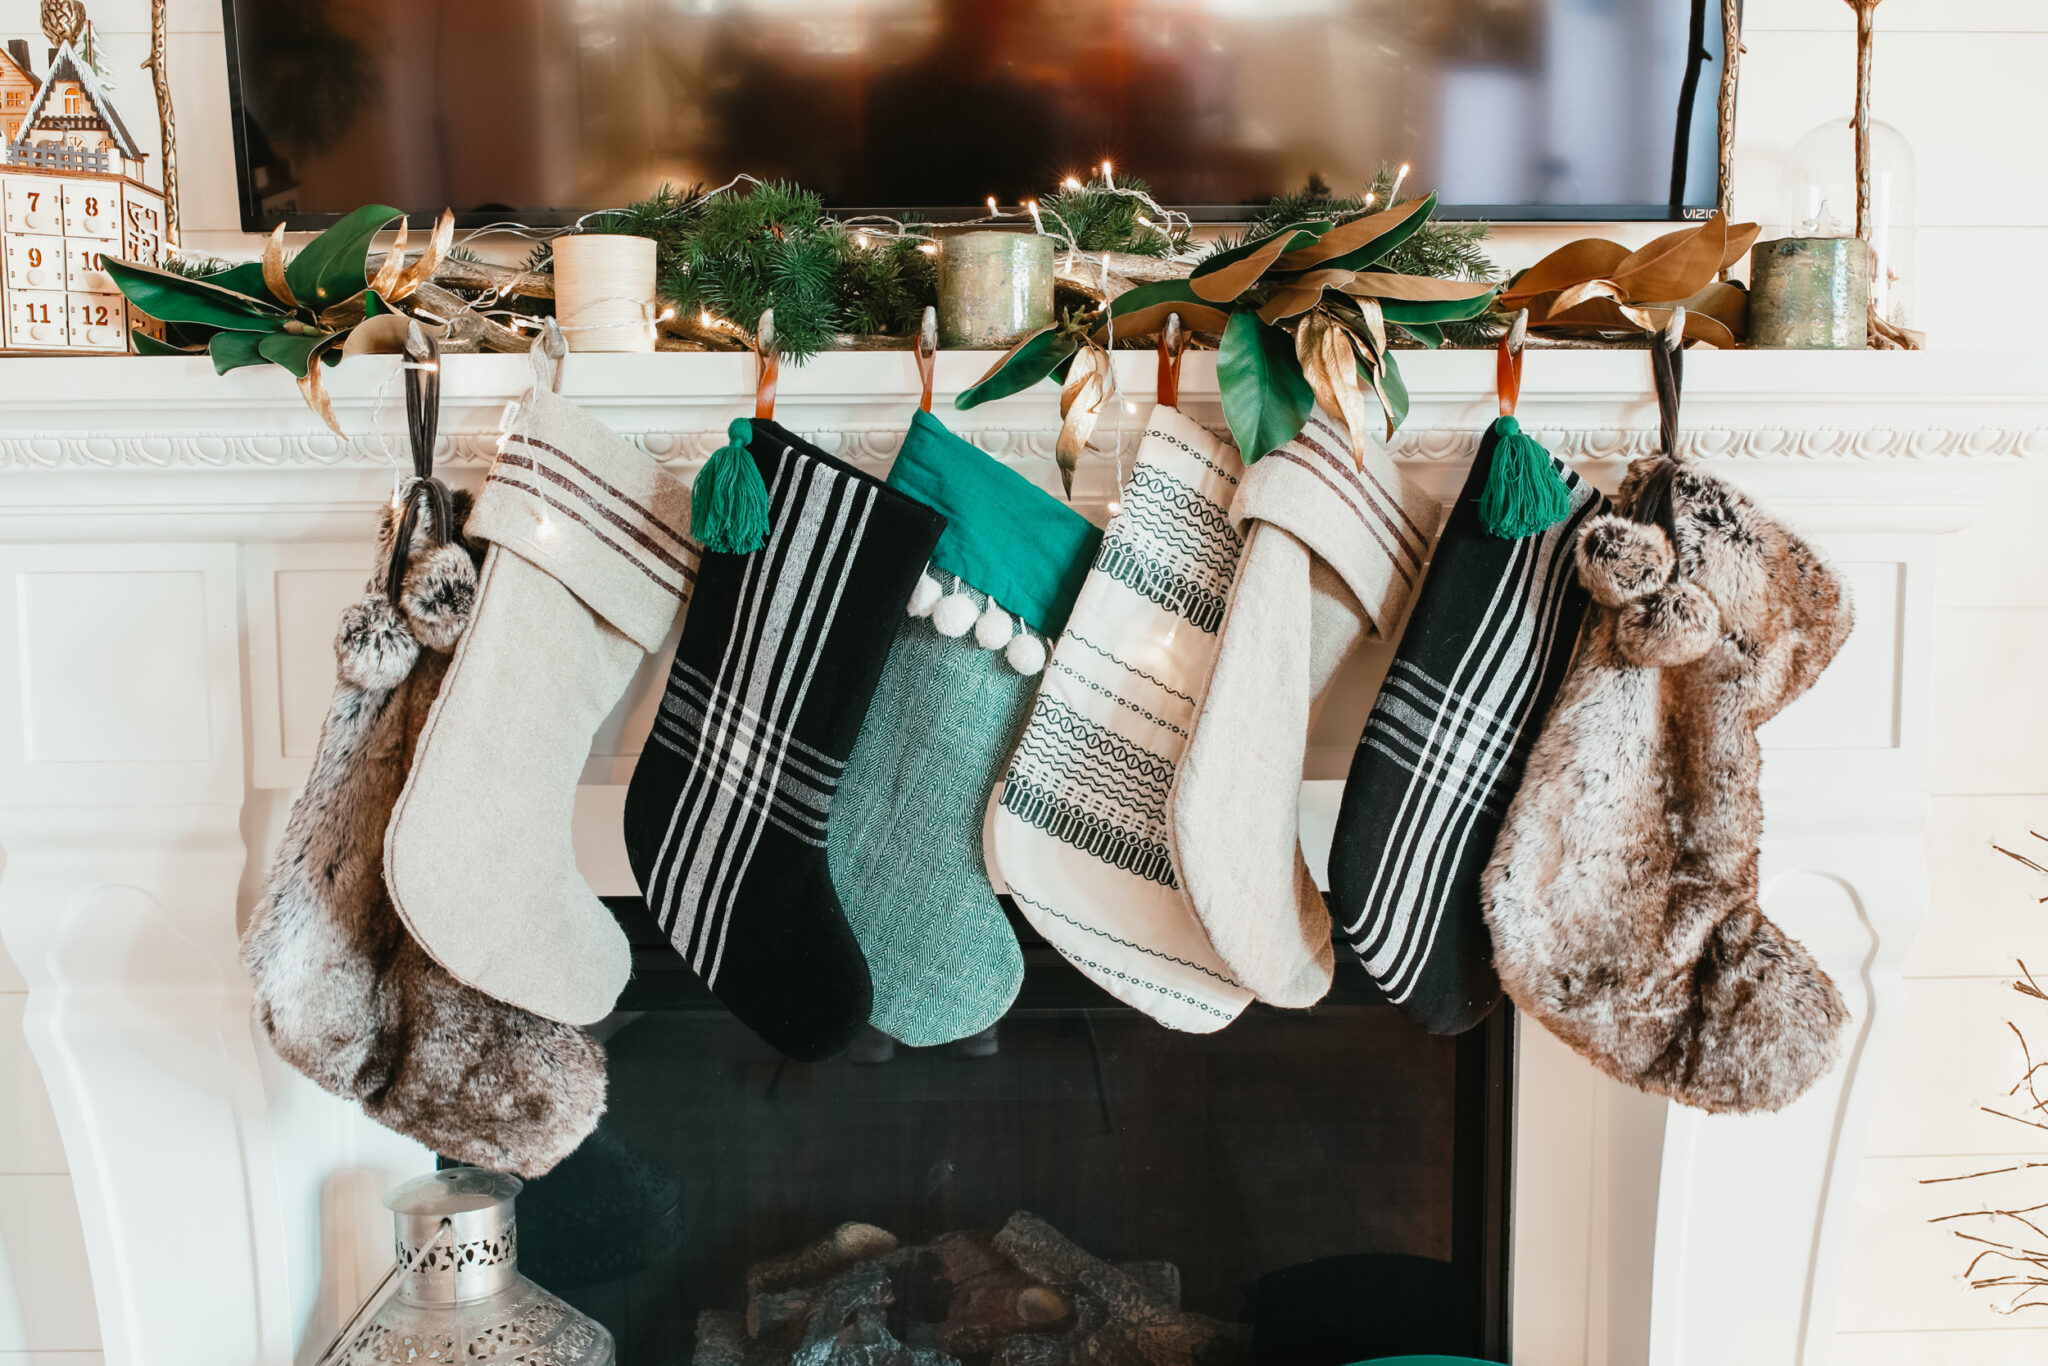 stocking over fireplace